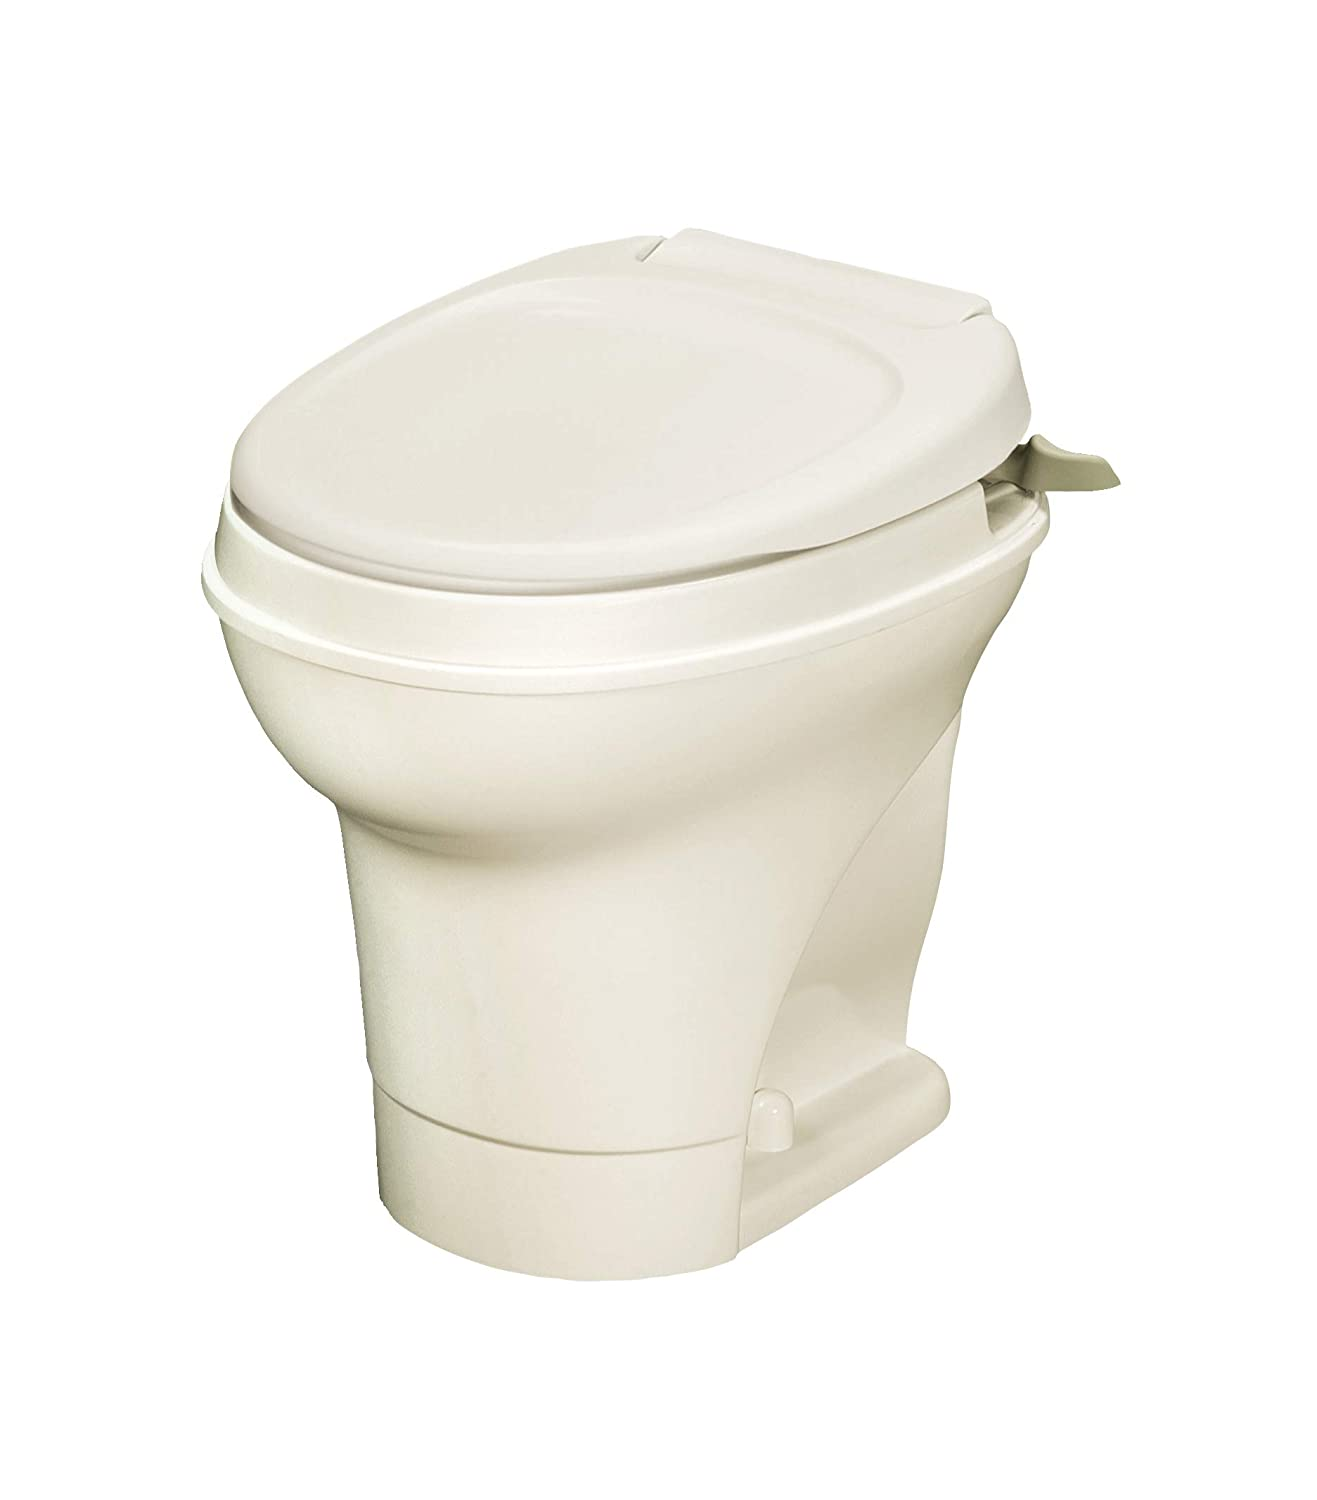 Thetford 31668 Aqua-Magic V RV Toilet, High Profile - Hand Flush - parchment TFORR